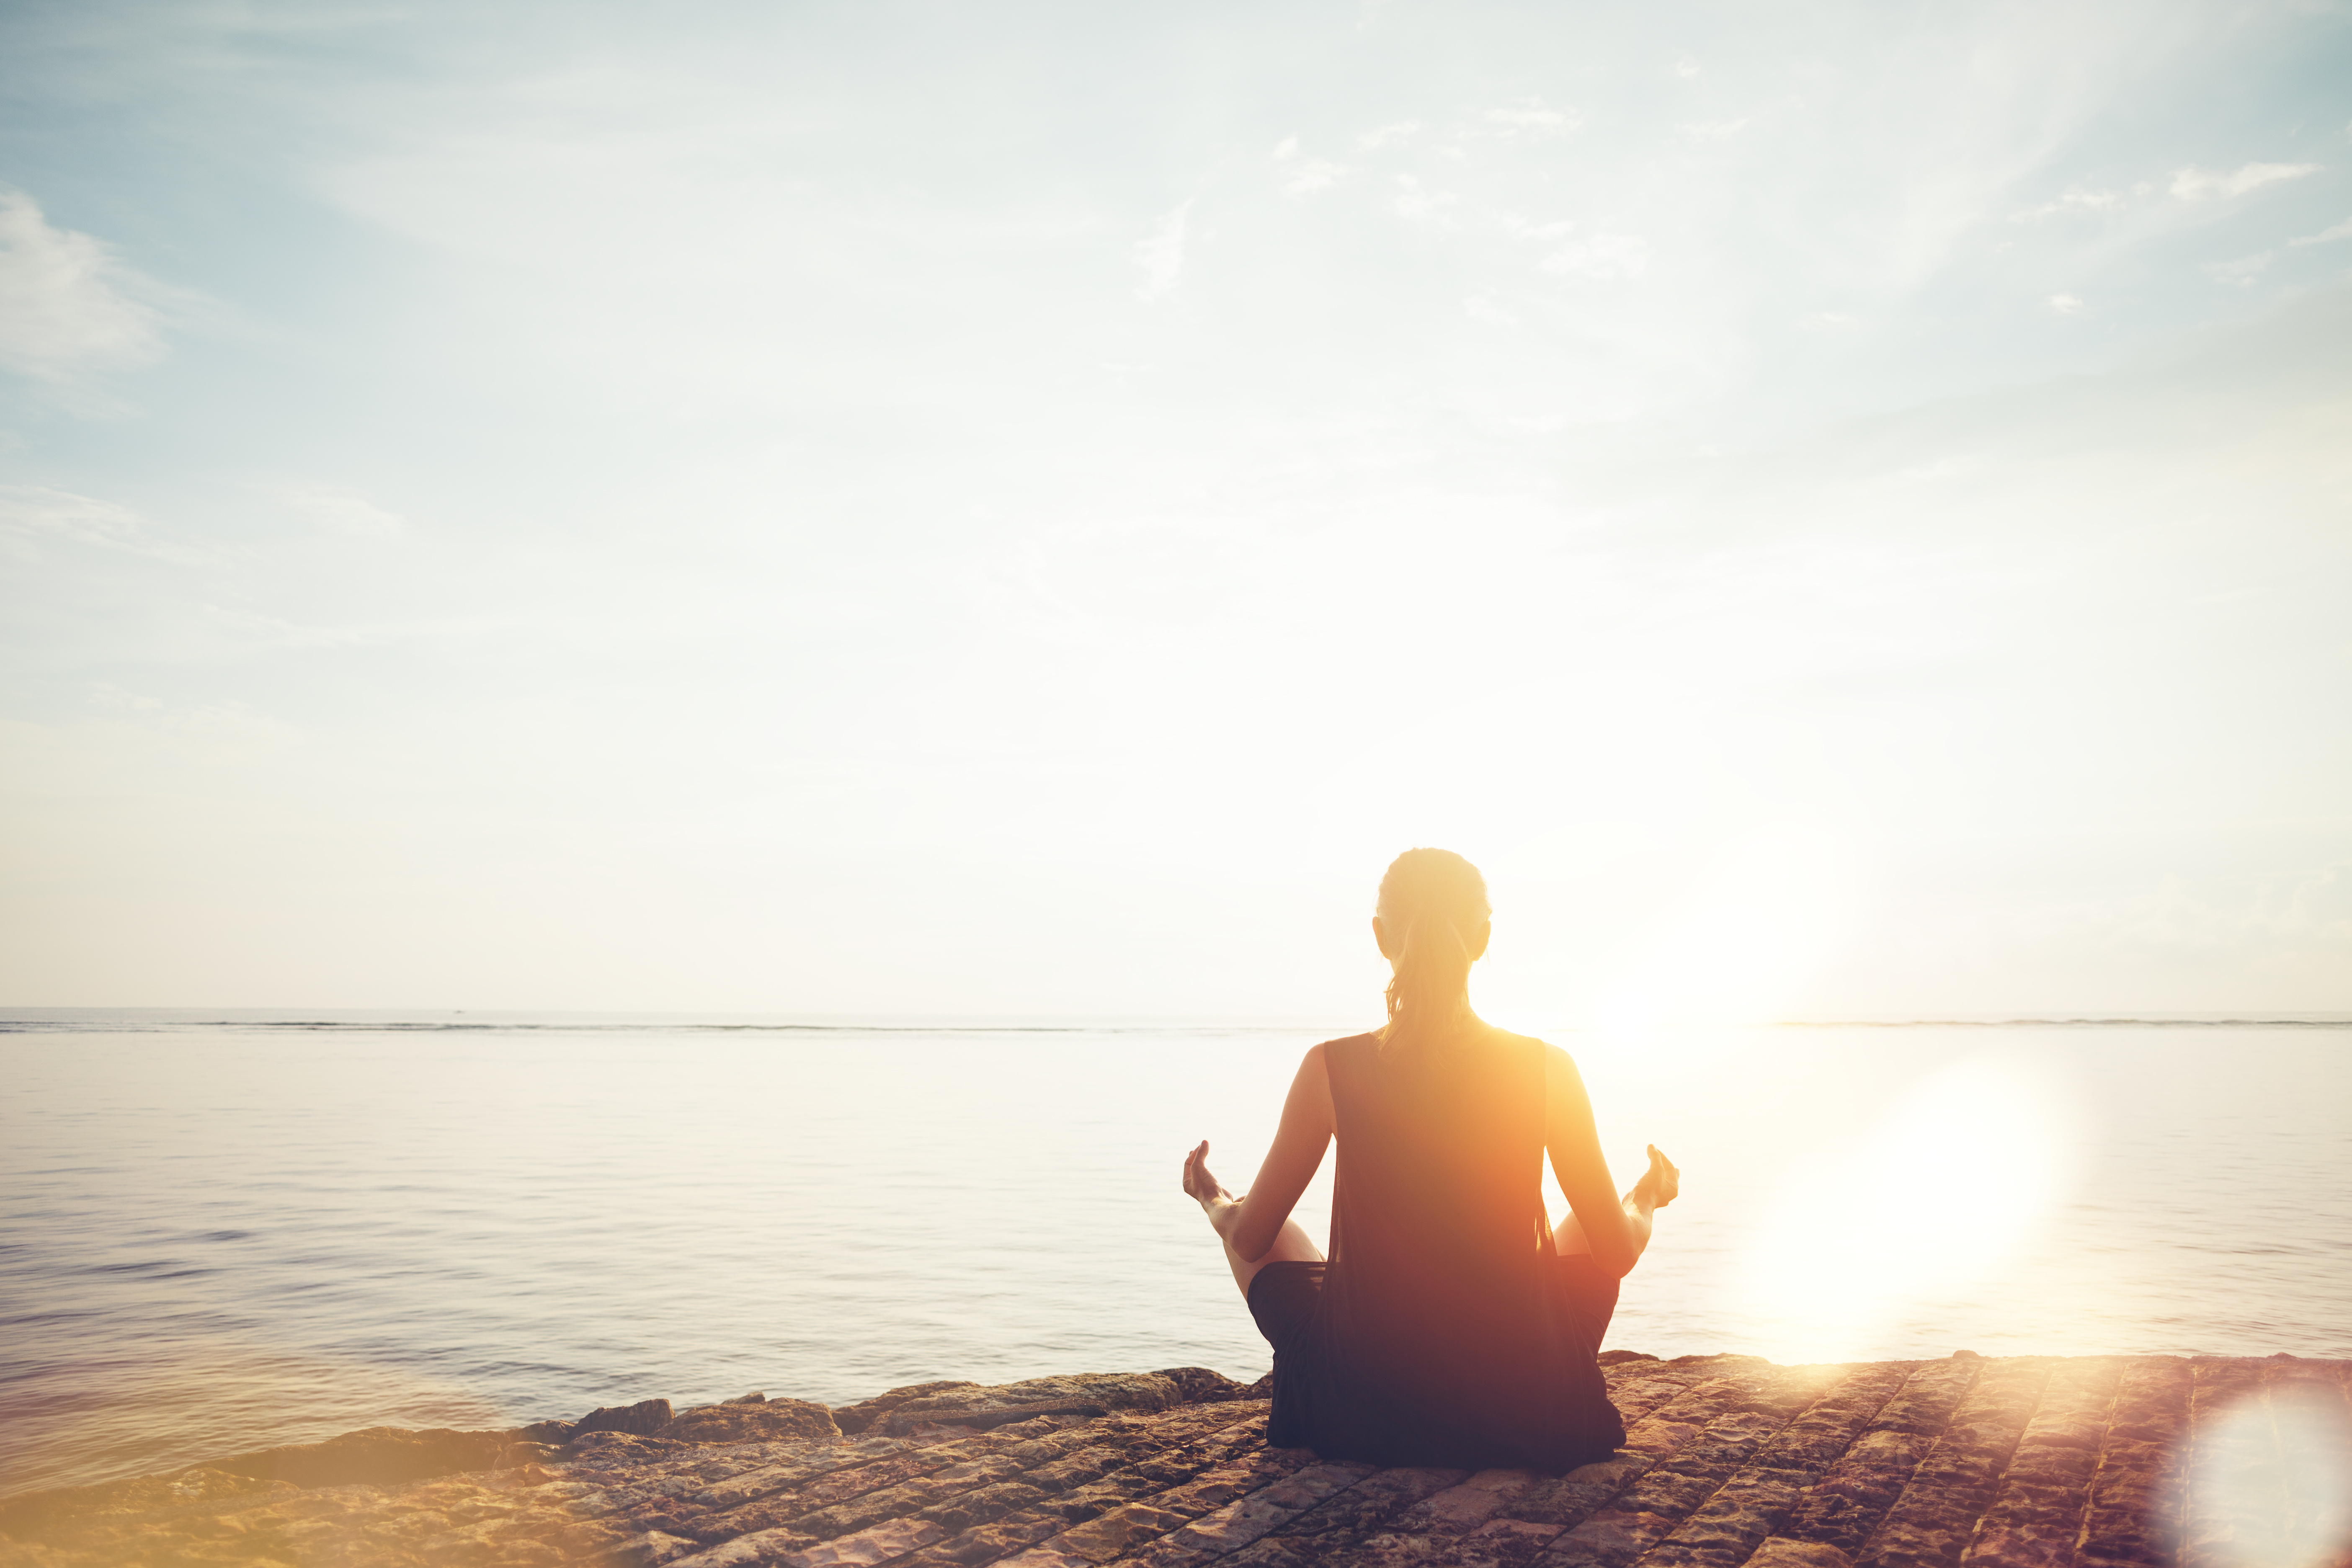 Young woman doing meditation practice on the beach. Intentional sun glare and lens flare effect